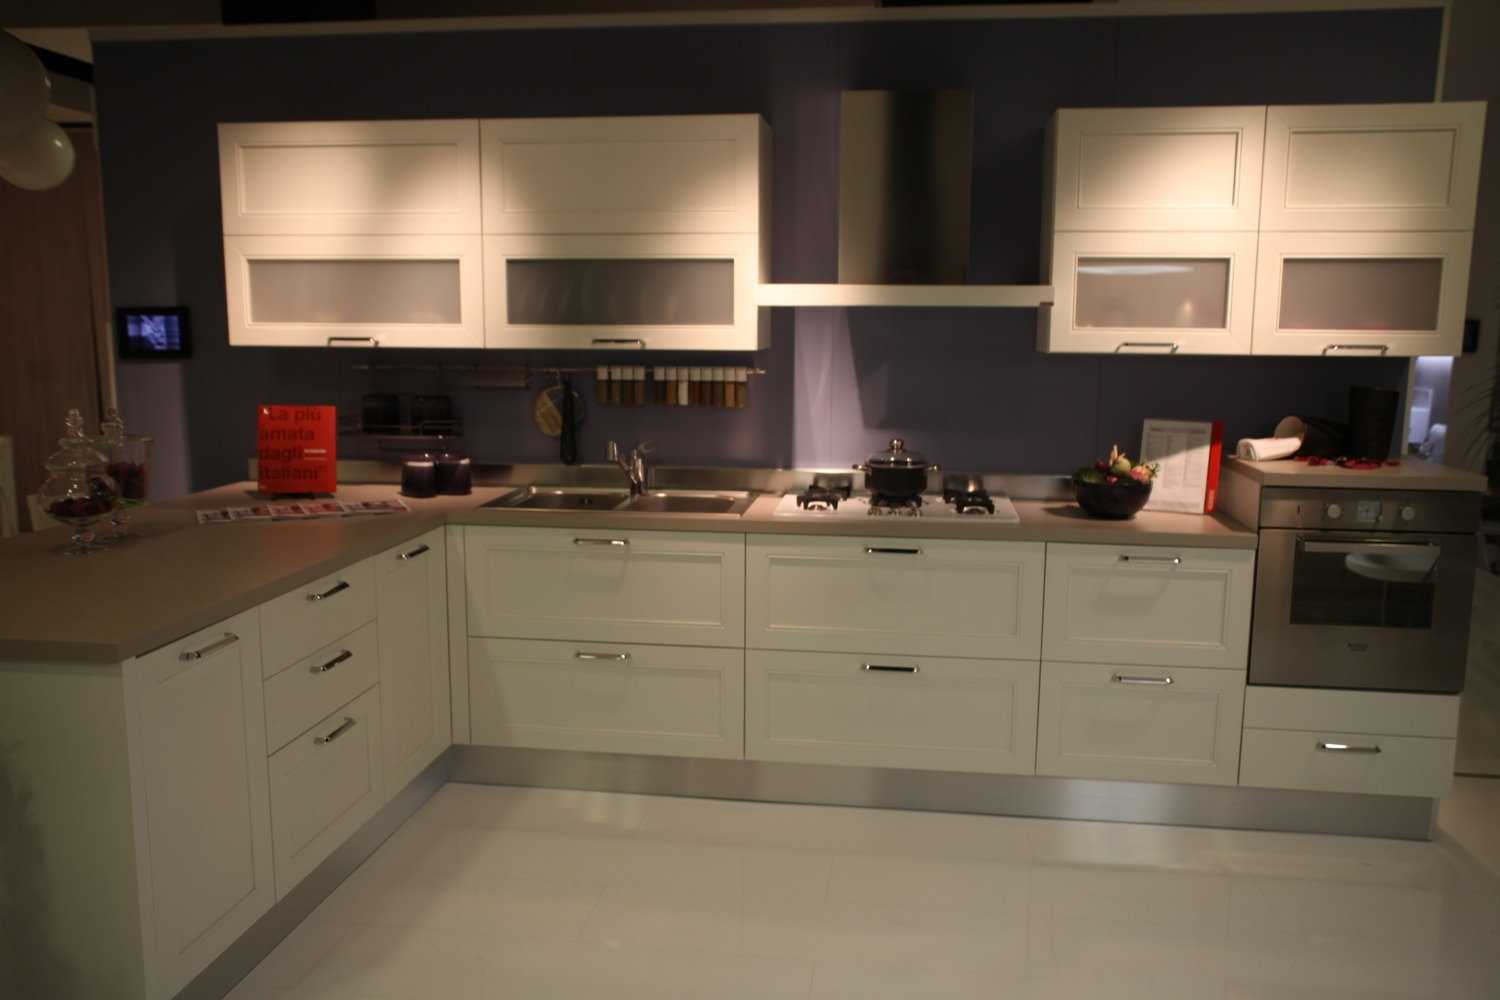 It Is Cucine Pictures To Pin On Pinterest #BB6510 1500 1000 Veneta Cucine E Scavolini